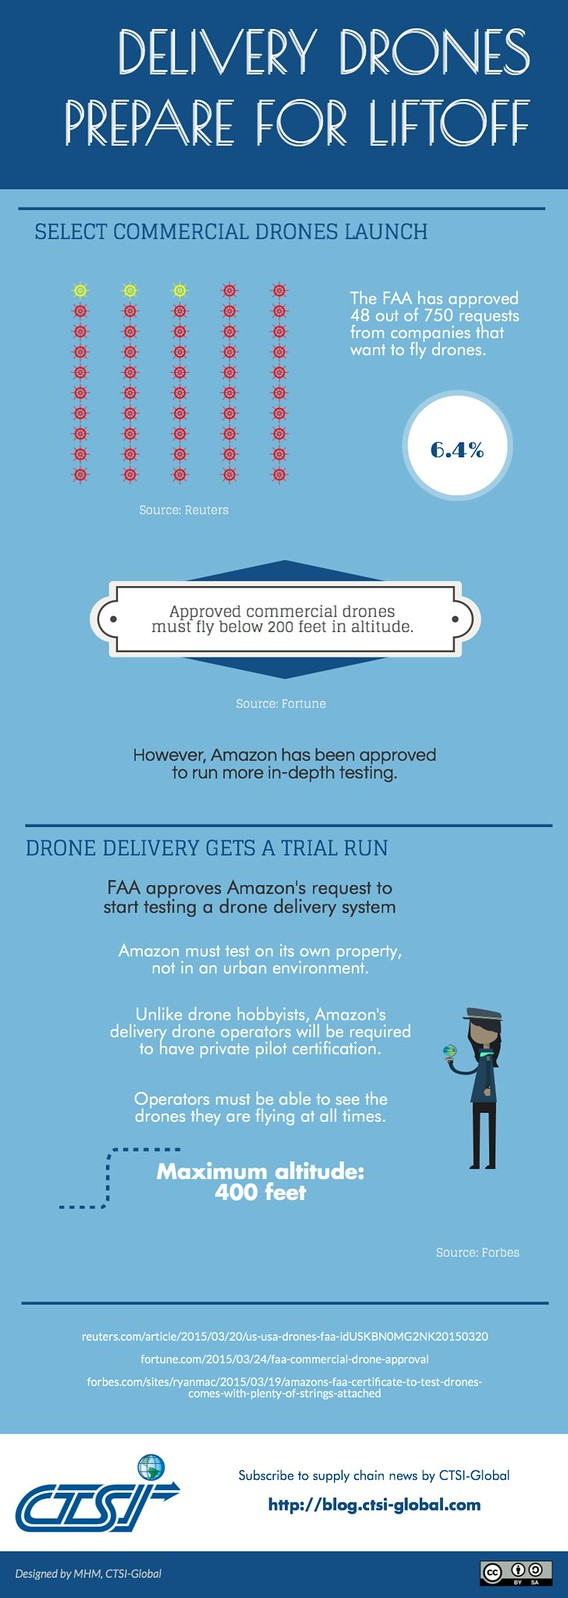 Delivery Drones Prepare for Liftoff (INFOGRAPHIC)